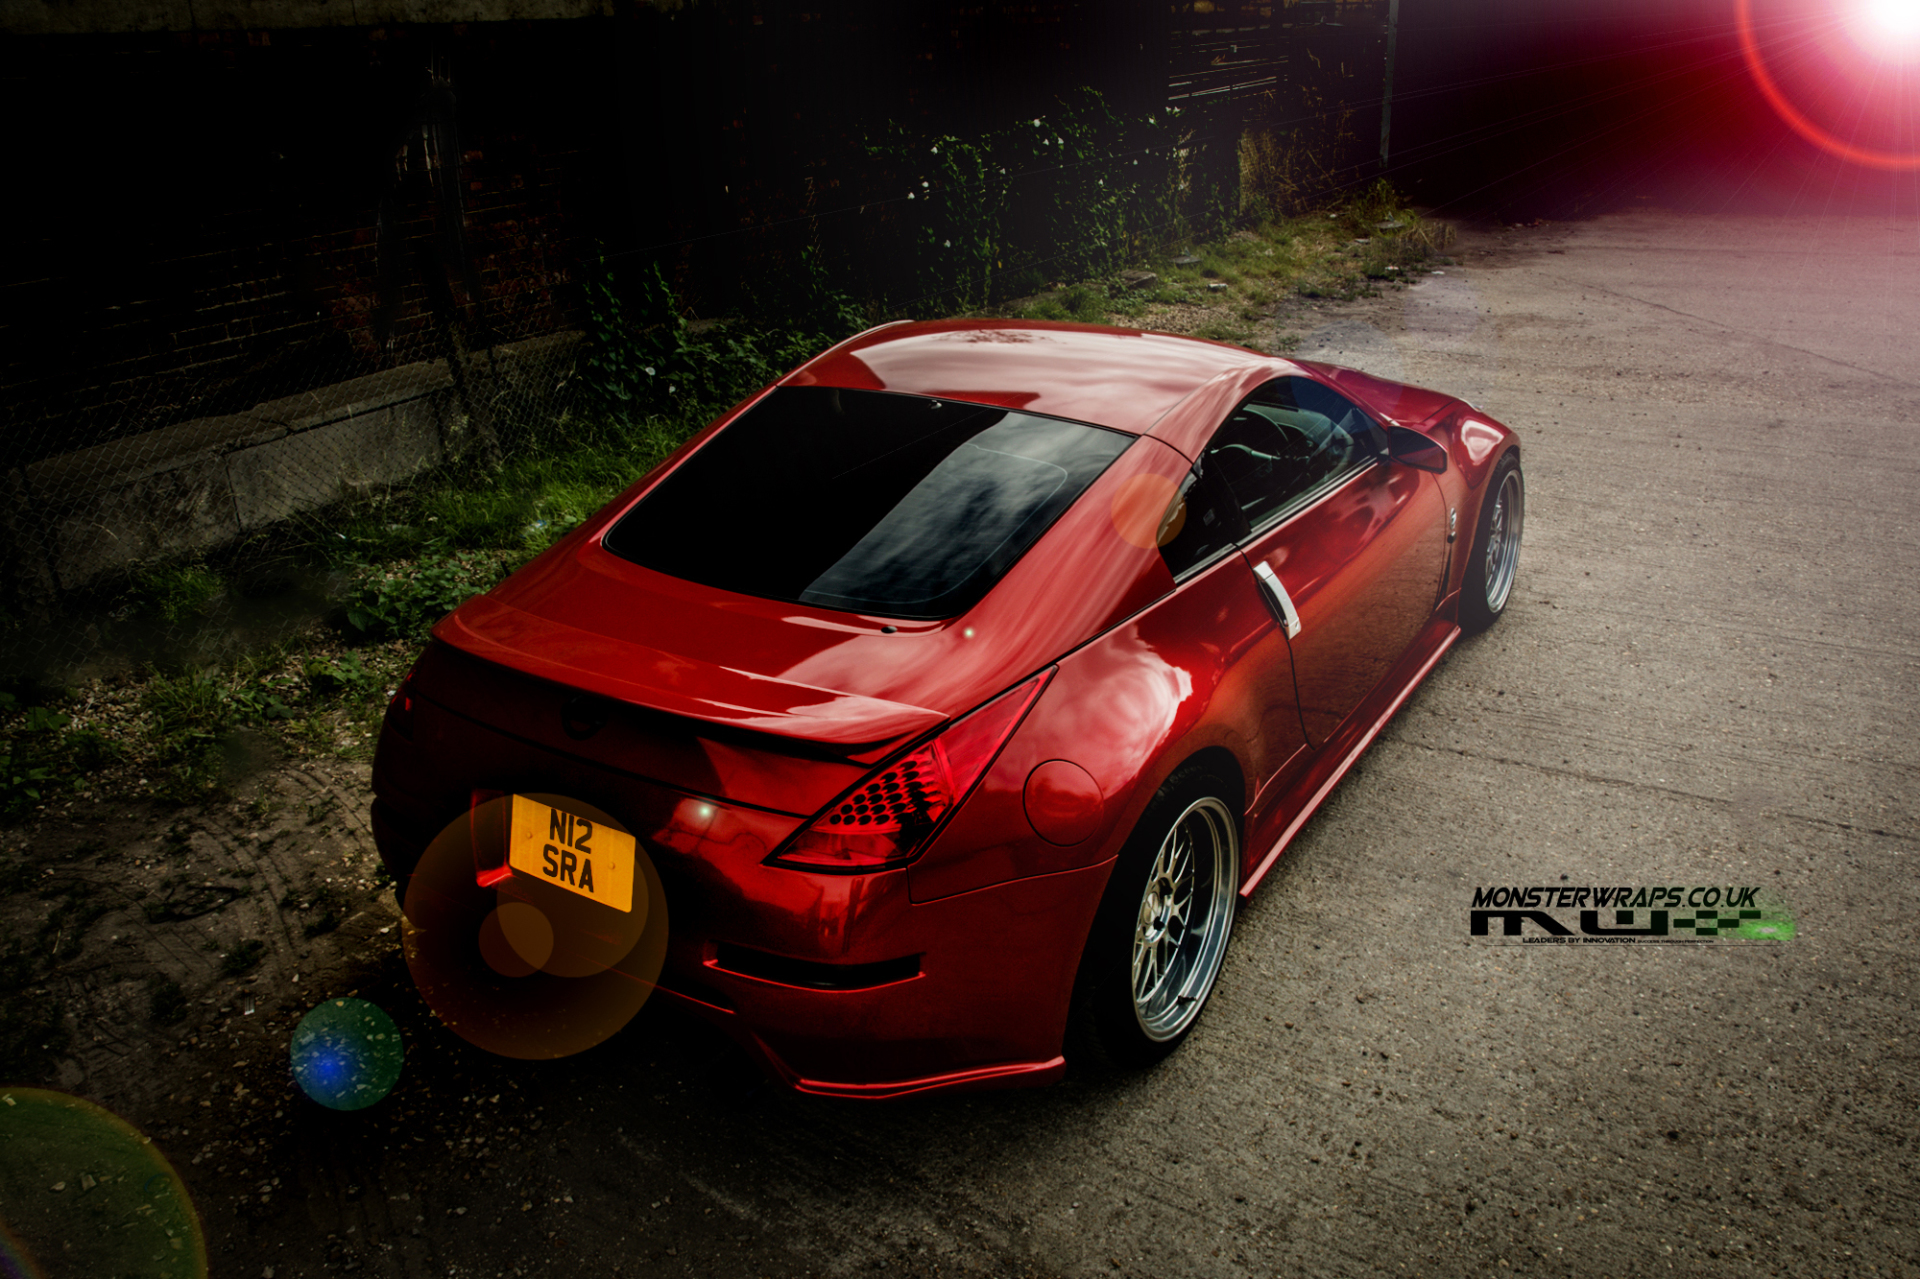 Nissan 350Z 3M Dragon Fire red wrap 3M Monsterwraps car wrap